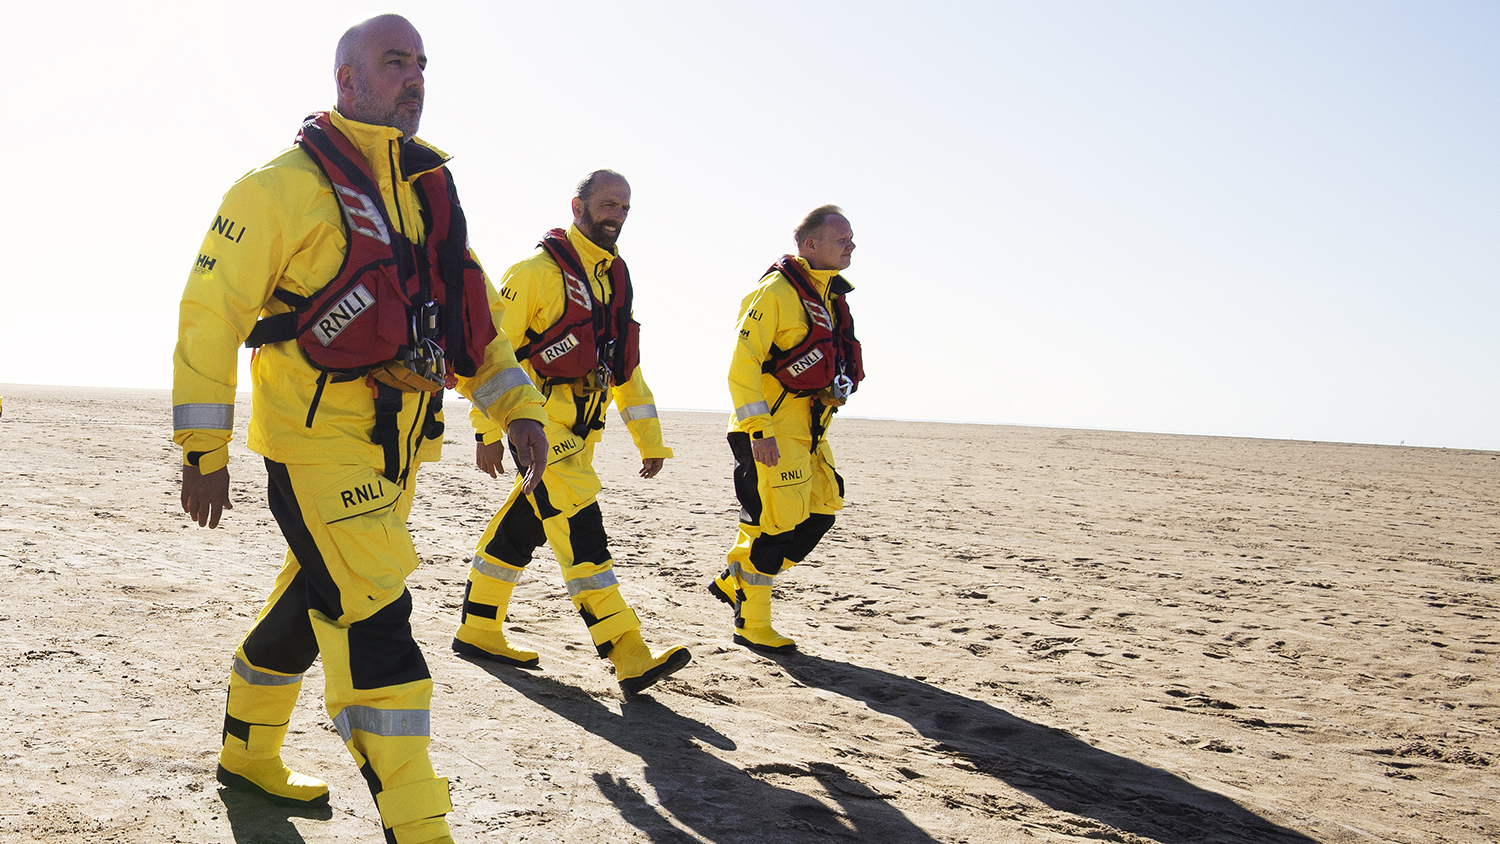 Lytham St Annes crew members Vinni Pedley, Tony Cox and Mike Gee hit the beach in their in all-weather kit.